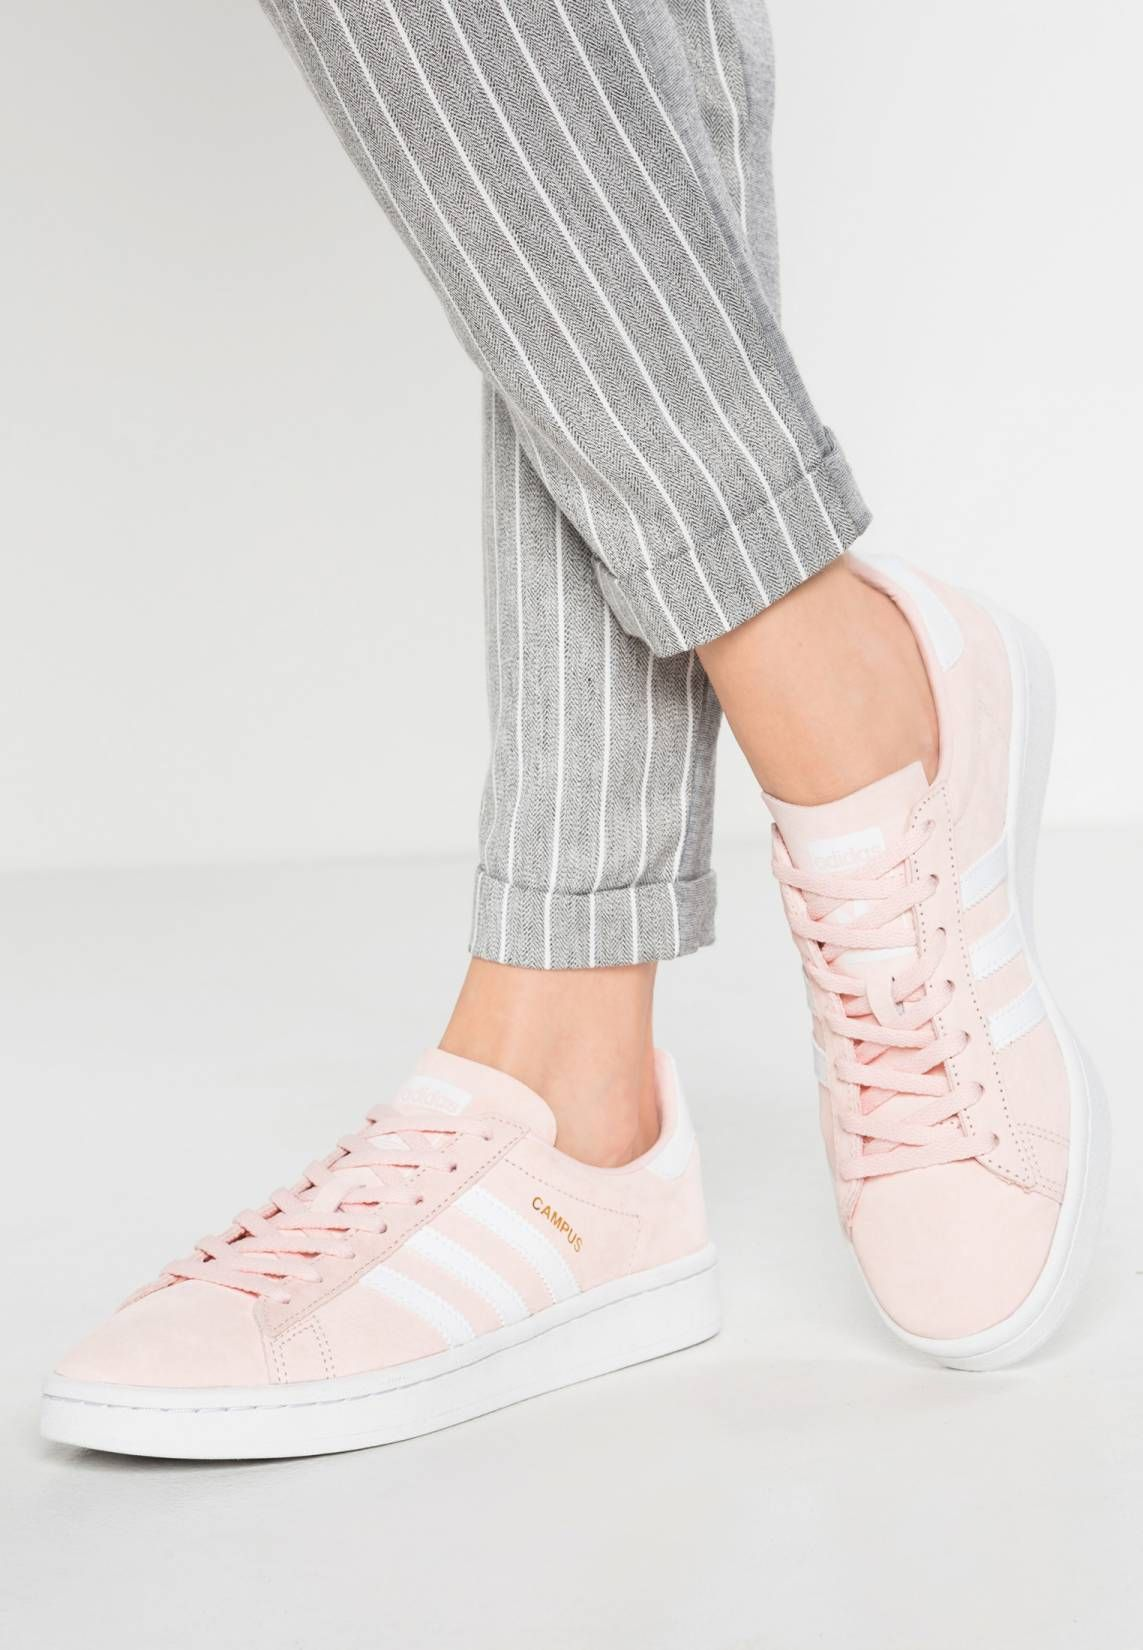 best sneakers fdf9c 7546d adidas Originals. CAMPUS - Sneaker low - icey pink white crystal white.  Sohle Kunststoff. Decksohle Textil. Innenmaterial Lederimitat Textil.